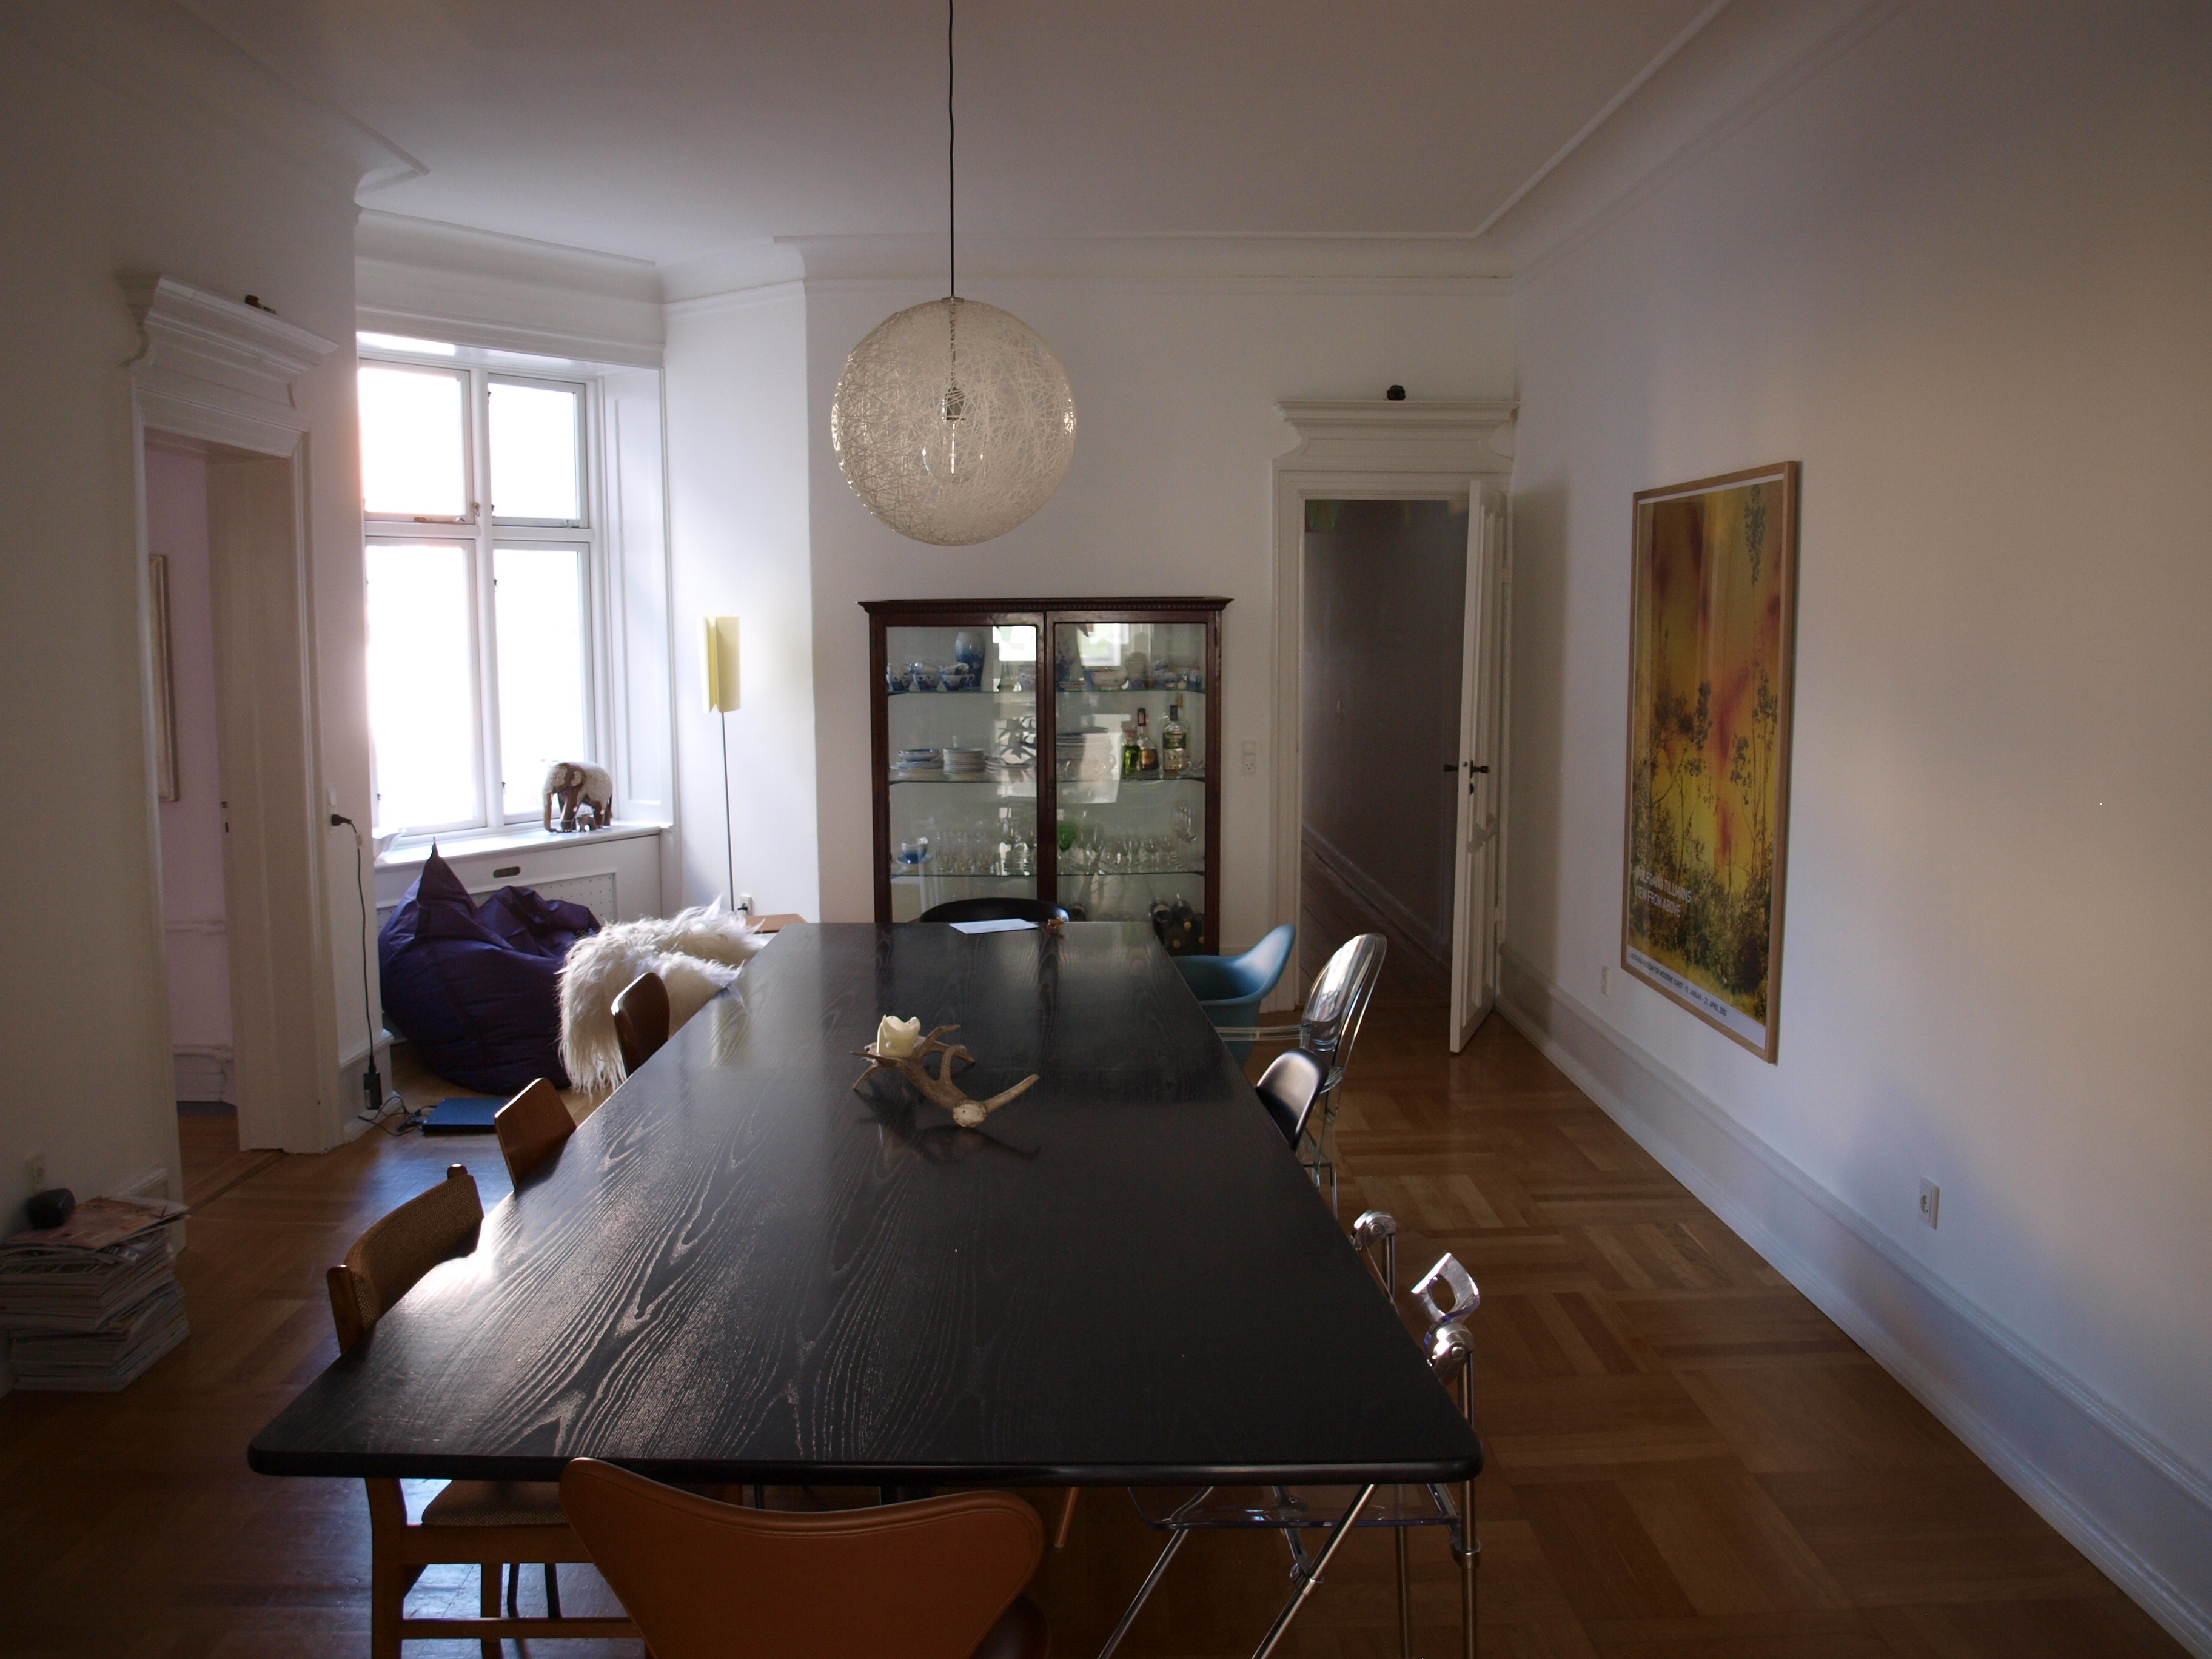 Room for rent in spacious apartment in cozy Østerbro